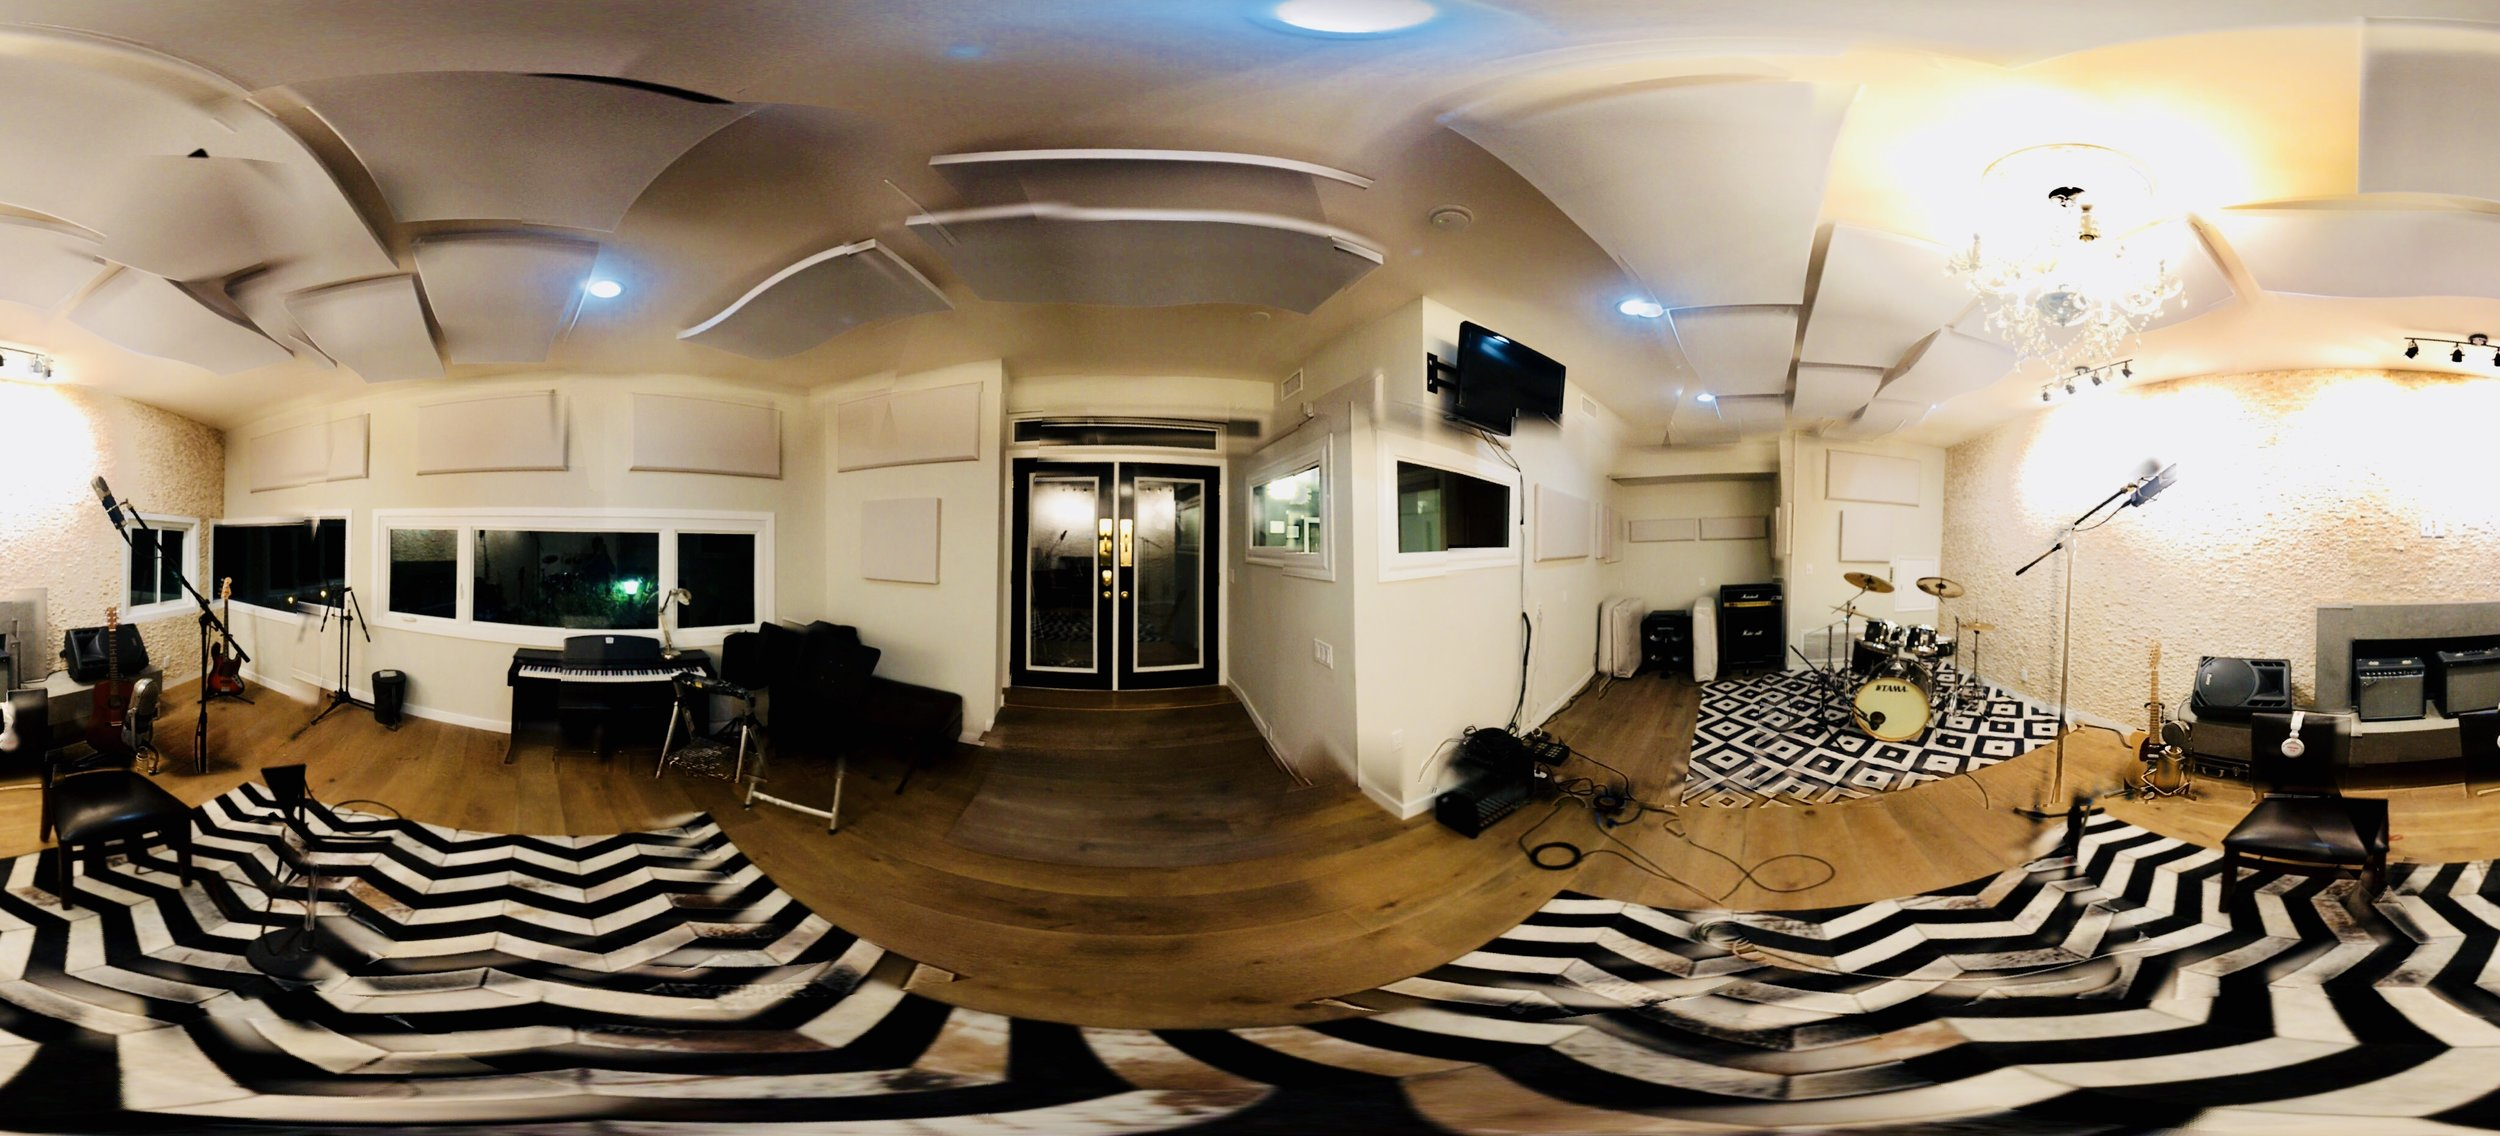 Blanck Records Live Room Wide 2.jpg